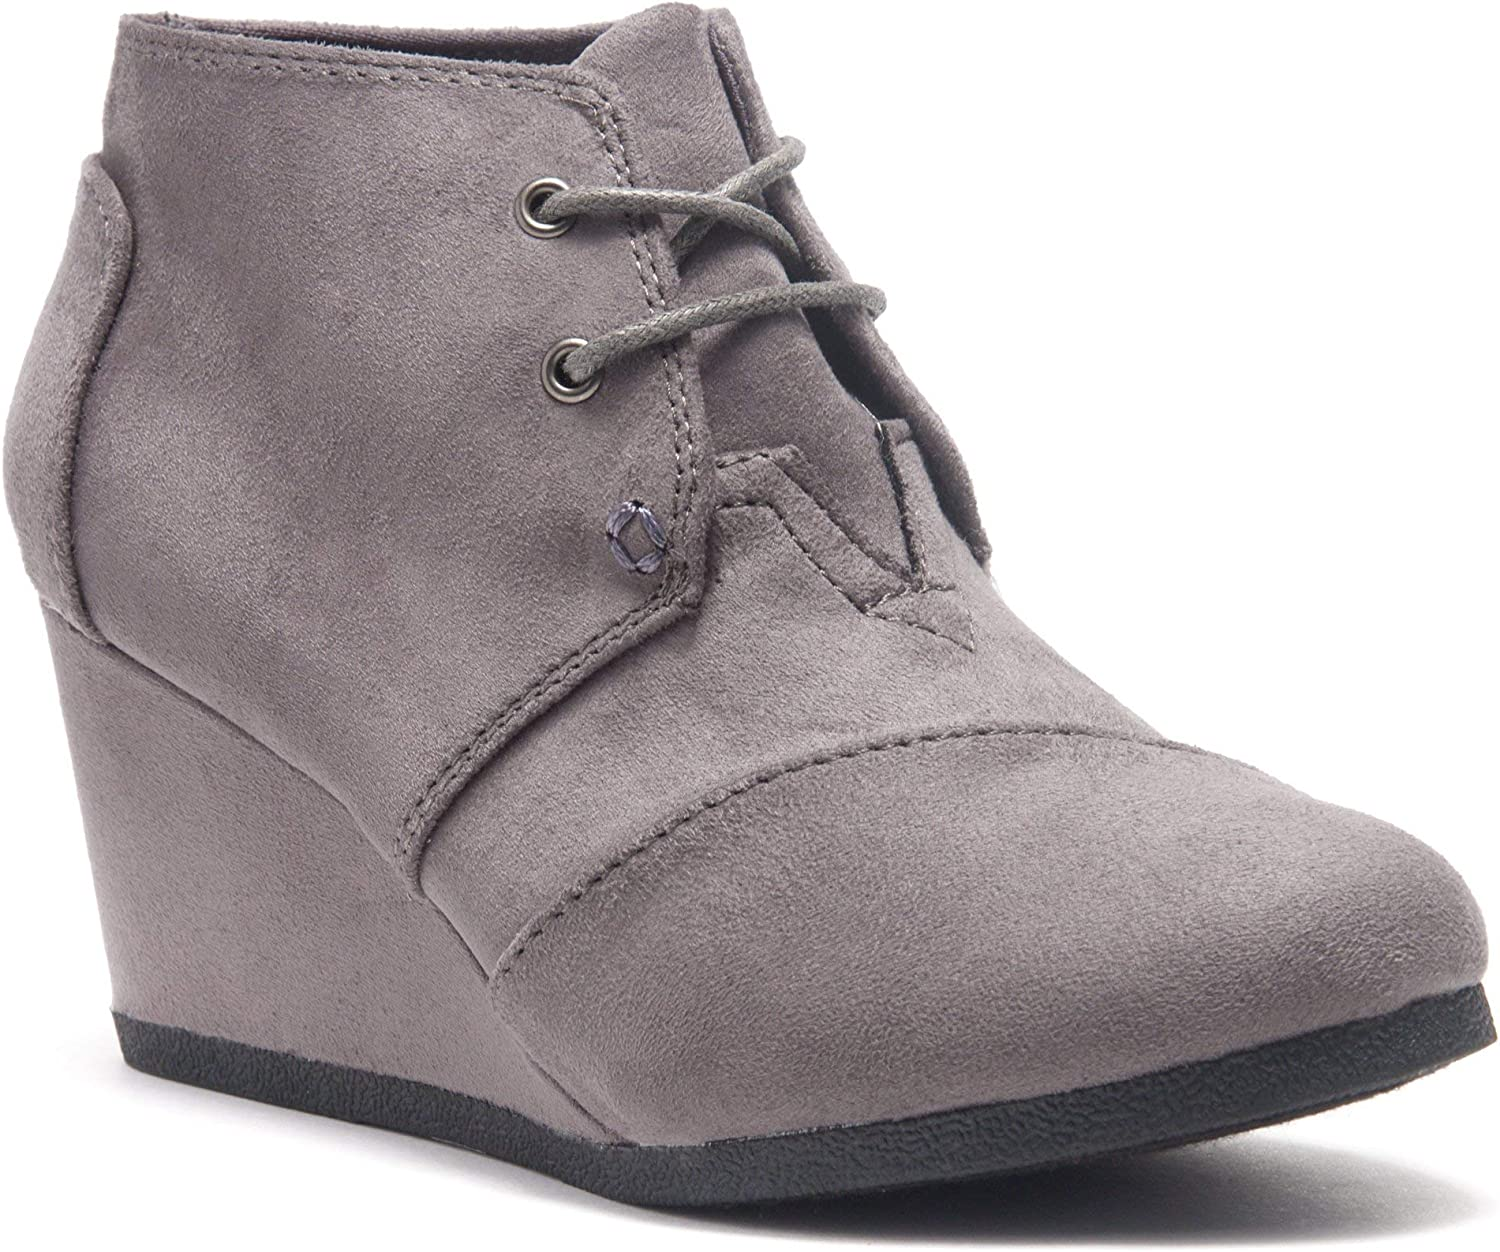 Herstyle Corlina Women's Fashion Casual Outdoor Low Wedge Heel Booties shoes Lace up Close Toe Ankle Boots